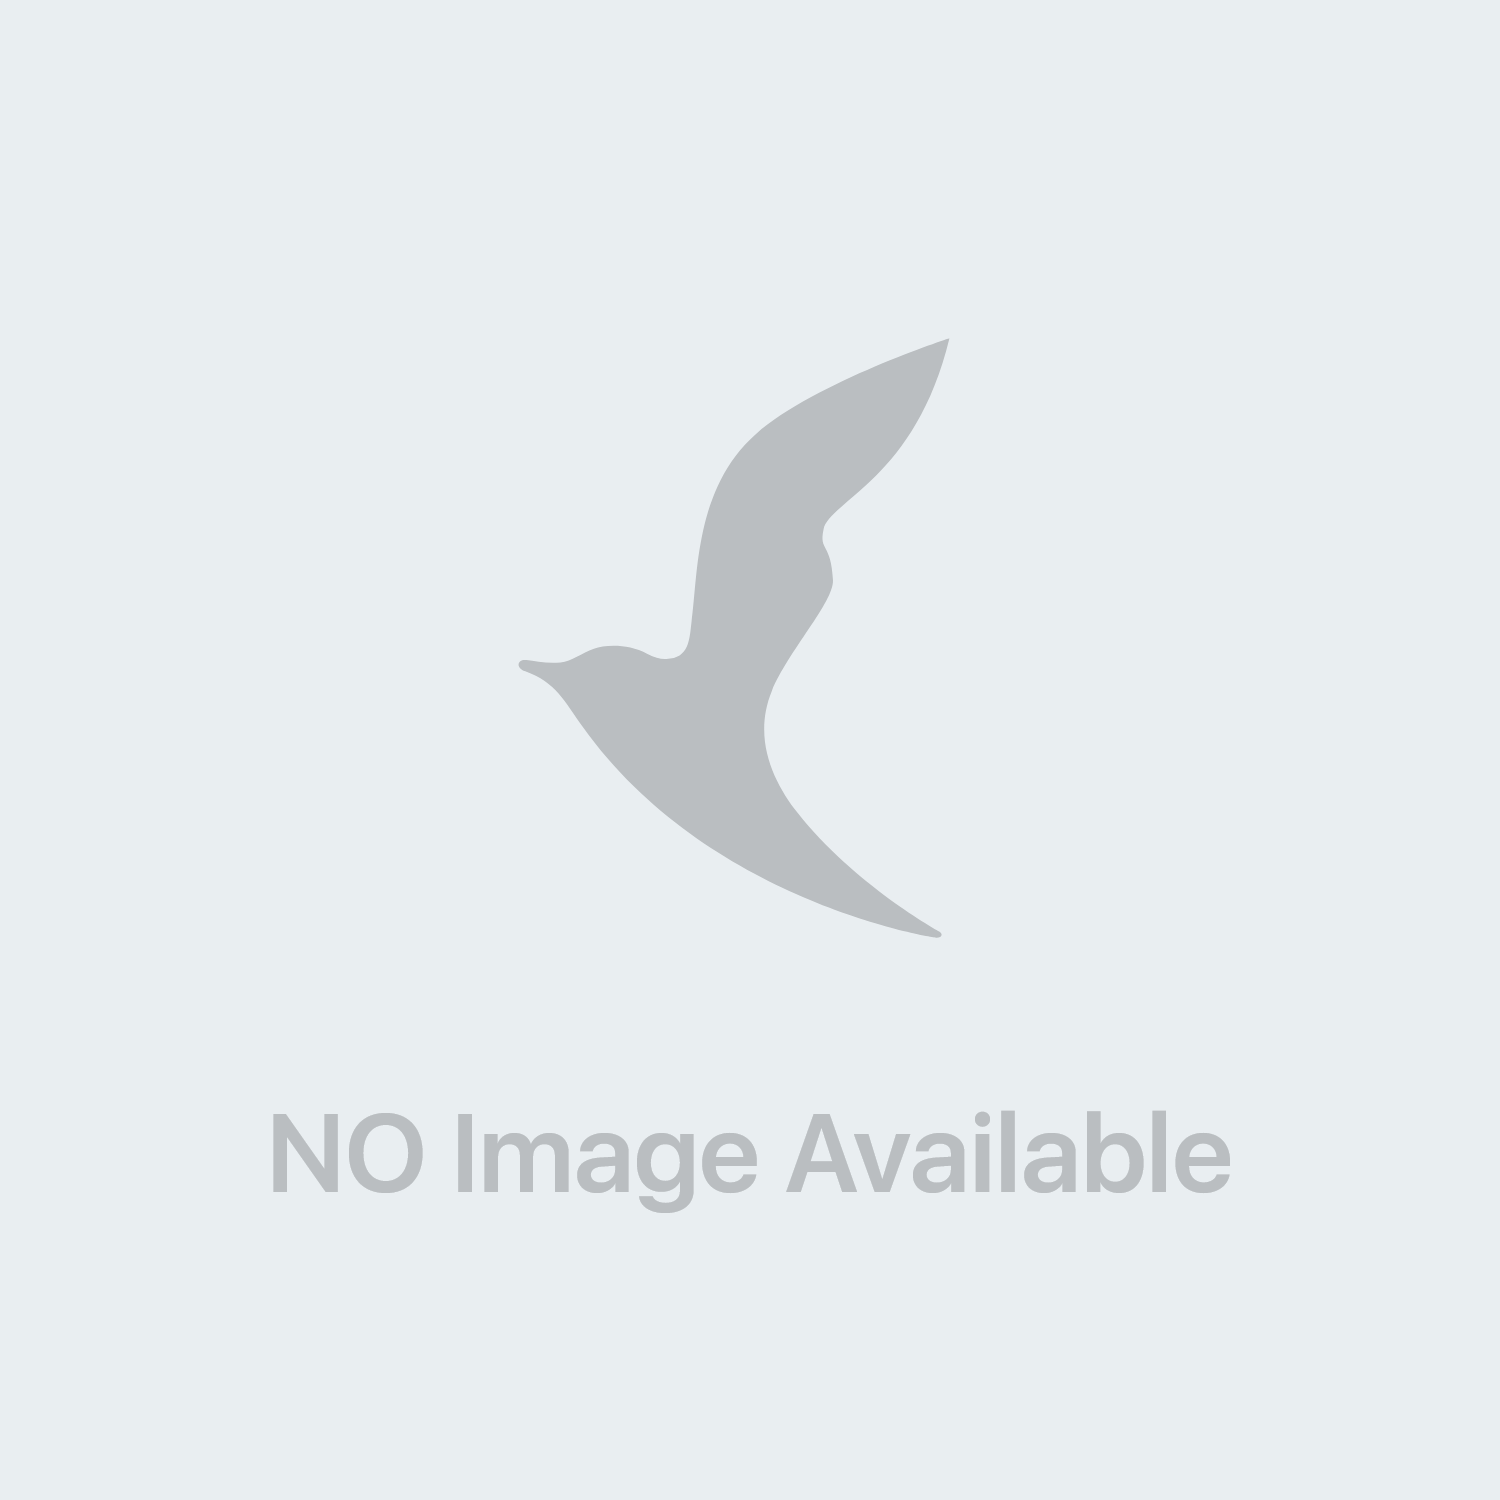 Body Spring Mirtillo Rosso Integratore Sistema Urinario 50 Capsule